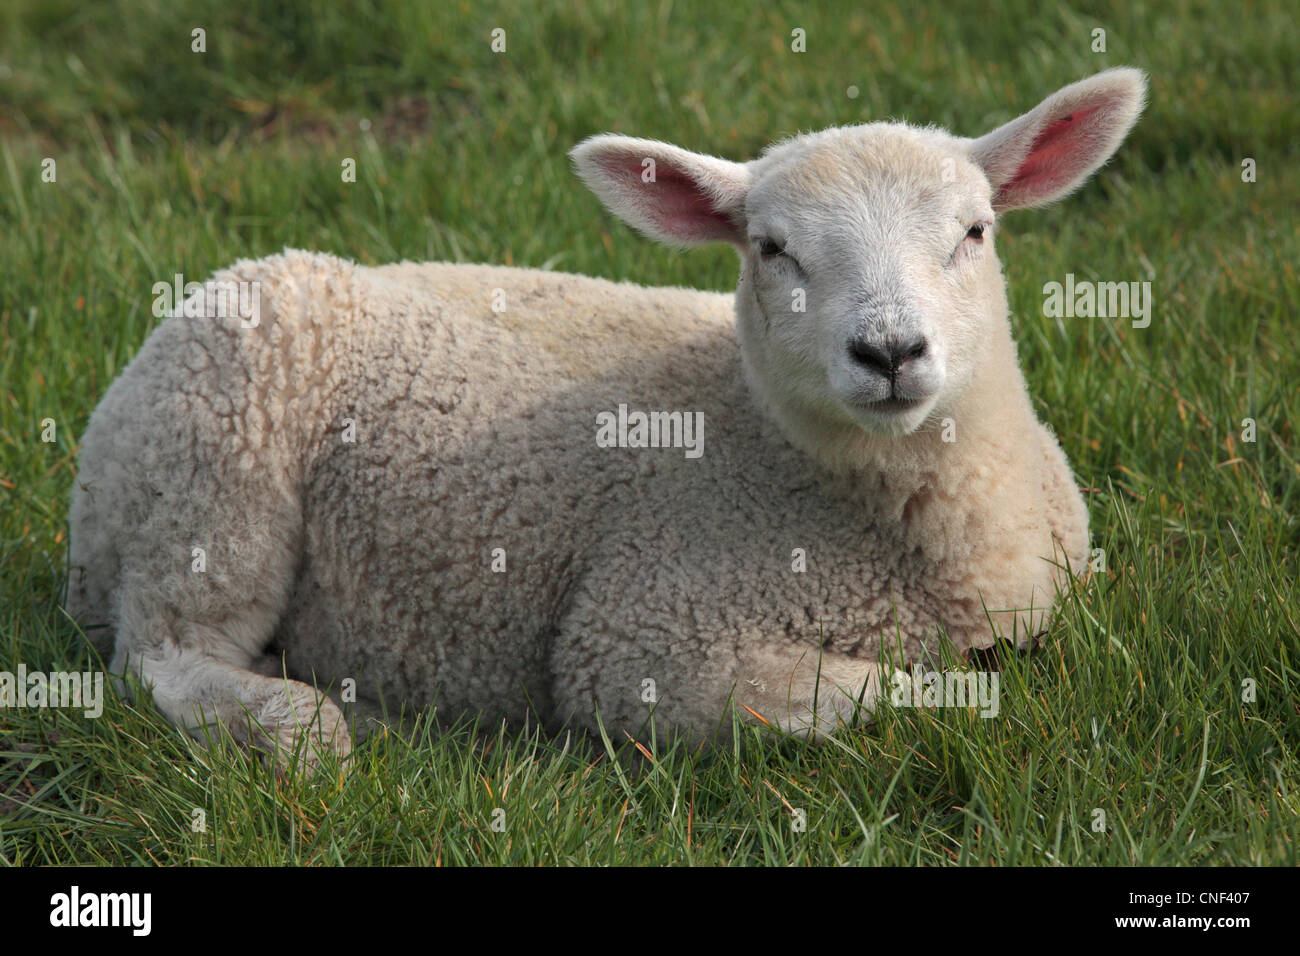 A lamb in a field during lambing season in Nidderdale, Yorkshire - Stock Image